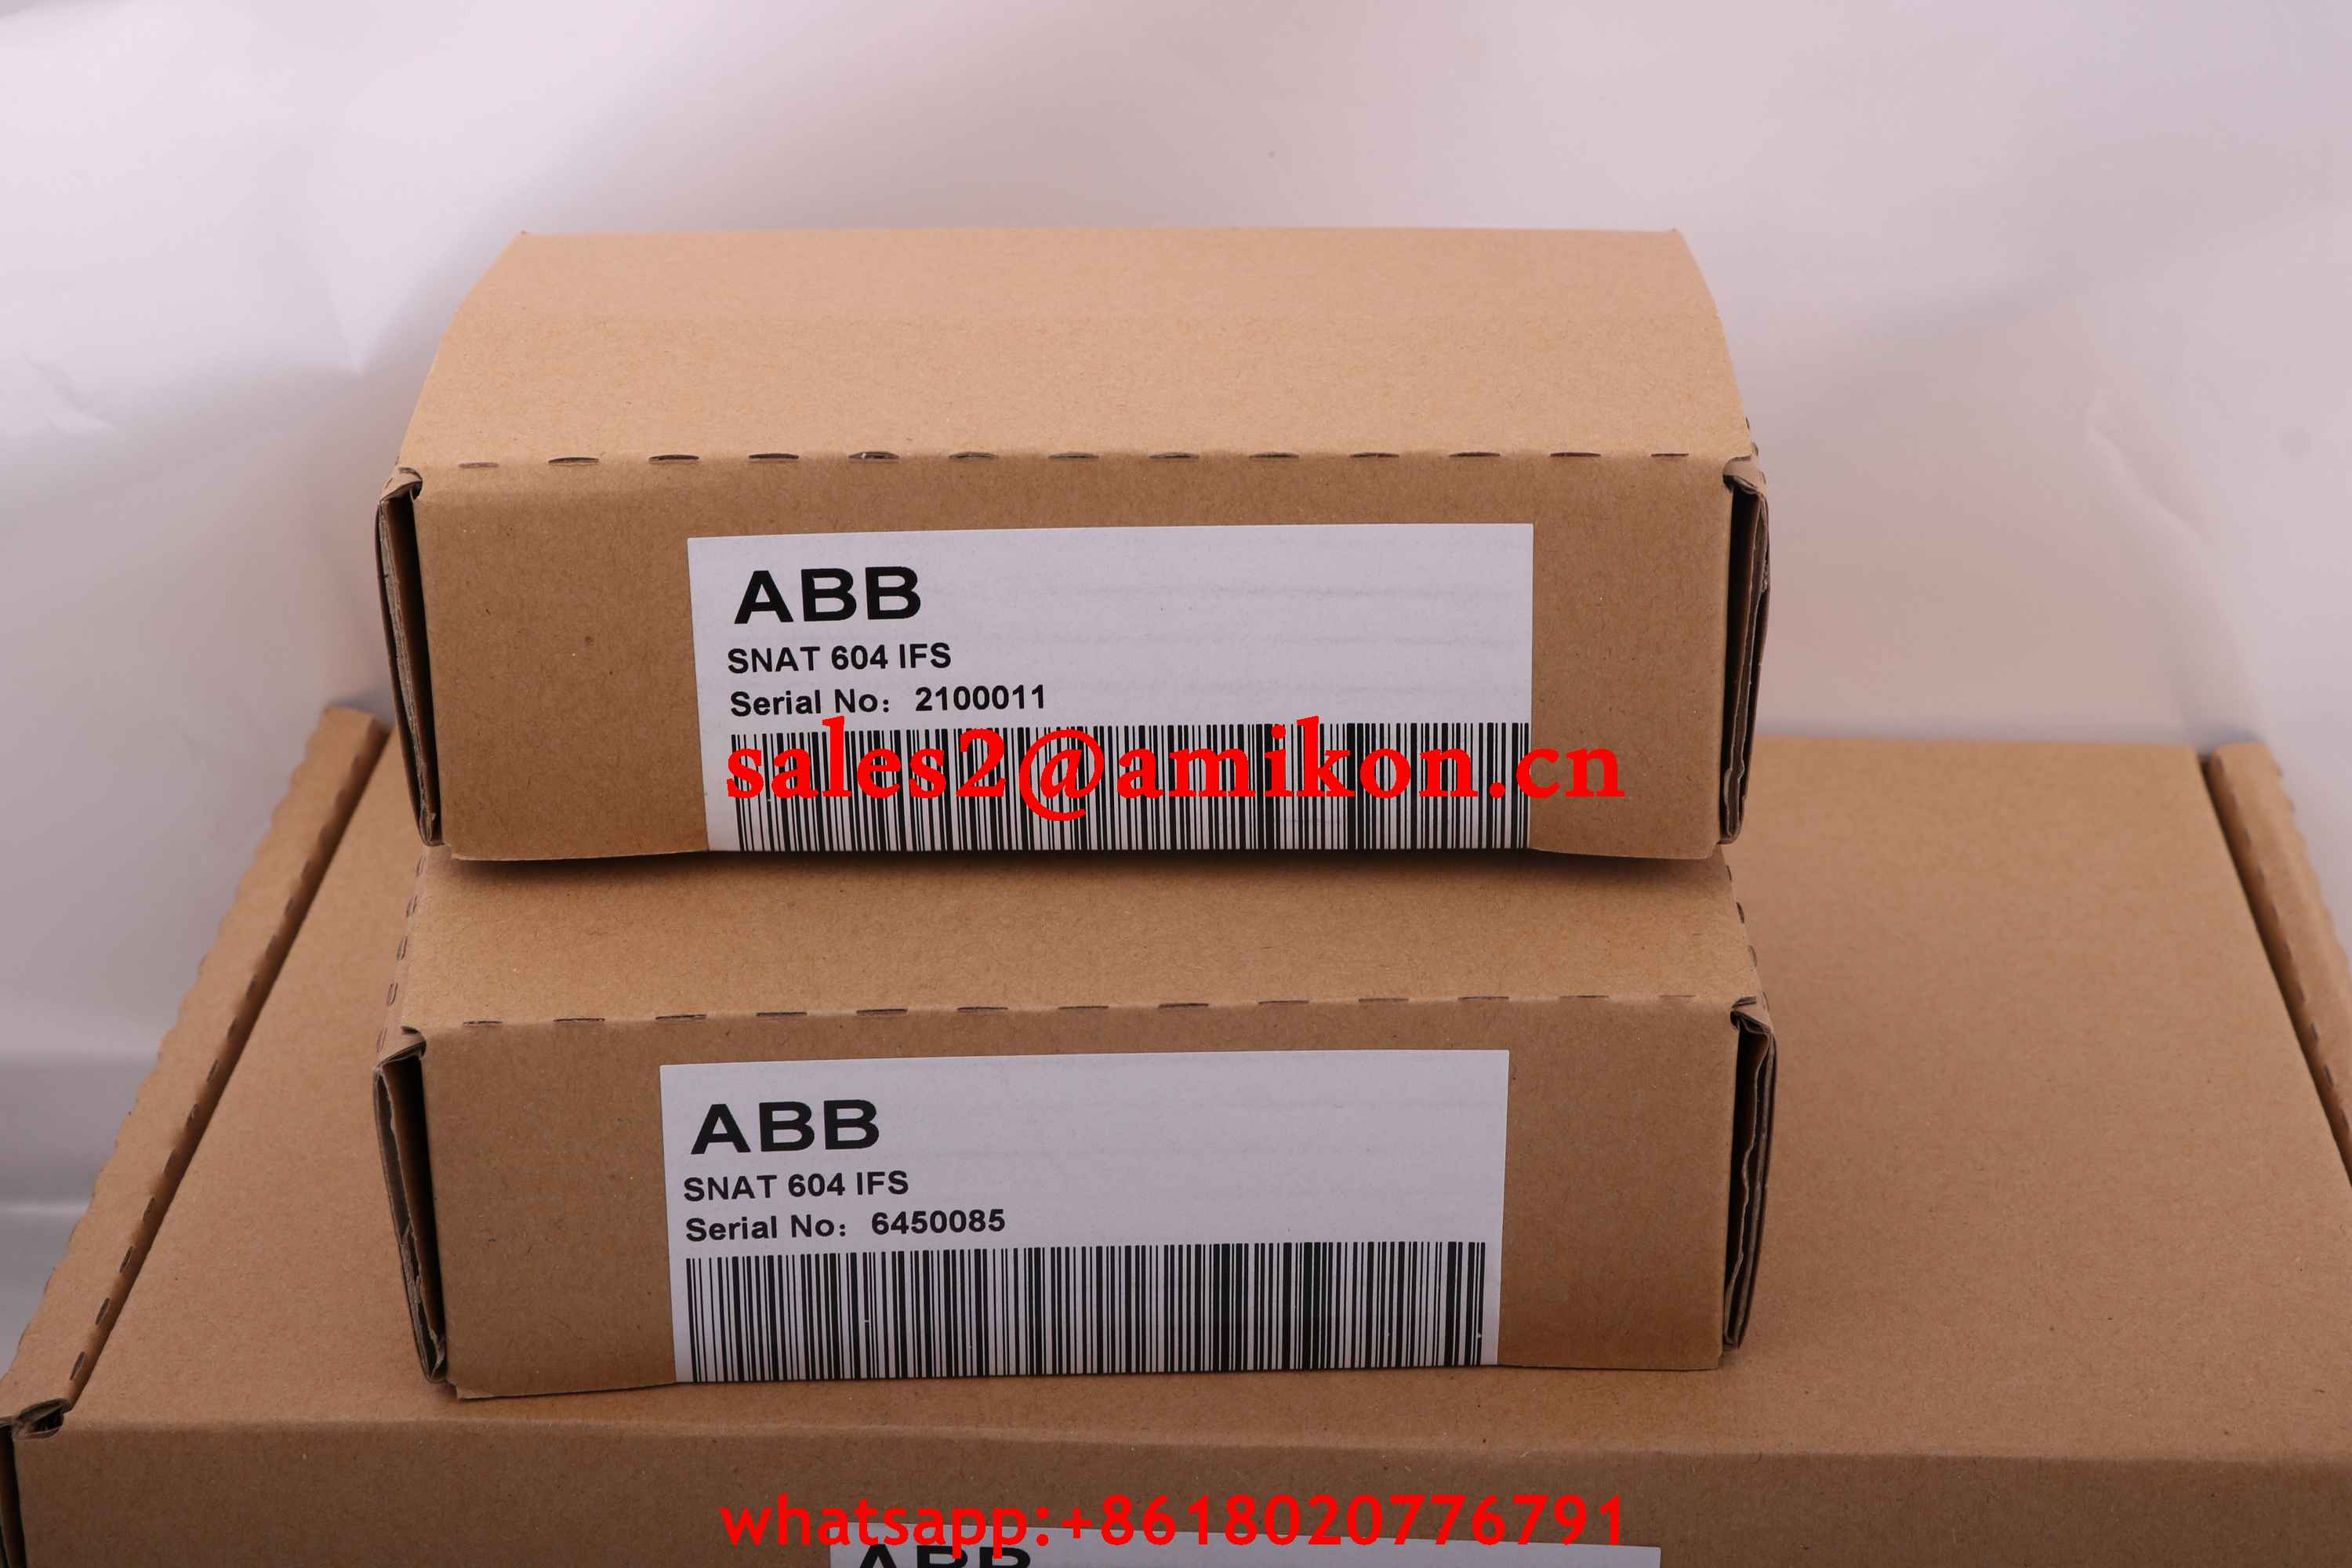 3HNE 00026 Teach Pendant ABB | Robot spare parts | PLC DCS Parts T/T 100% New In stock